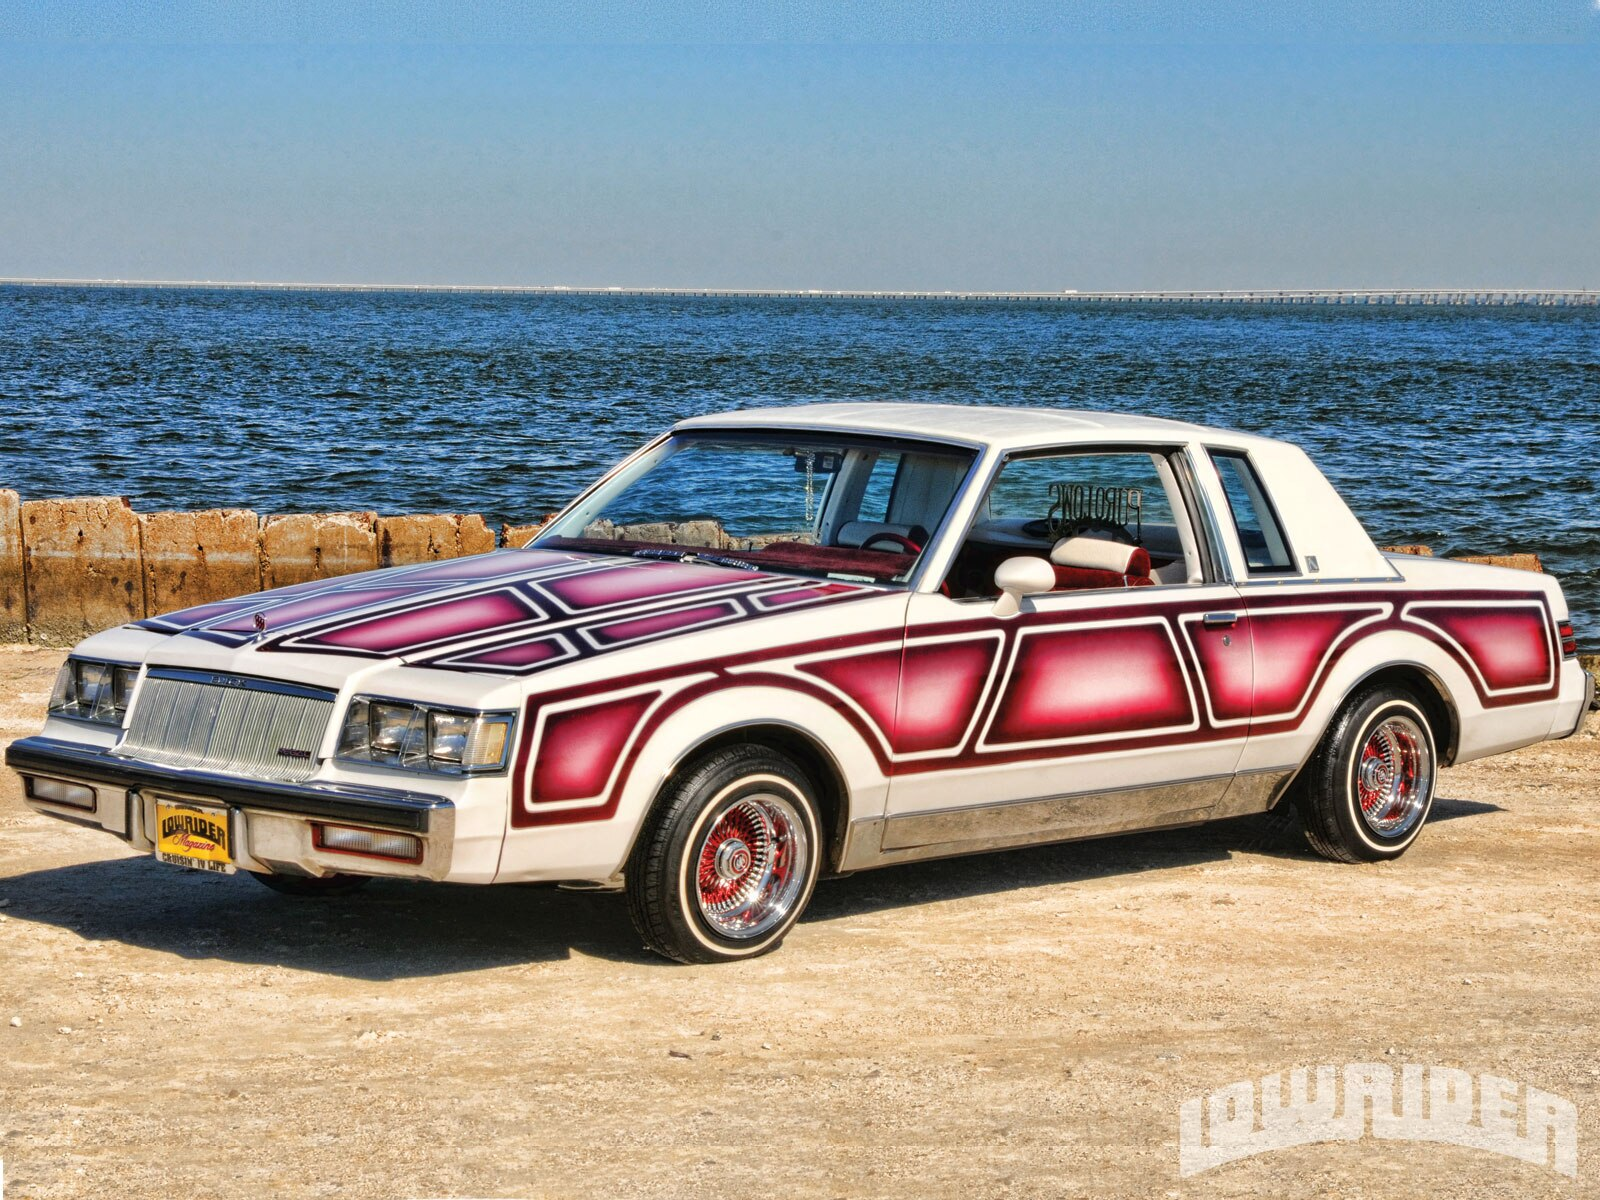 1202-lrmp-01-o-lowrider-on-the-BLVD-1984-buick-regal1